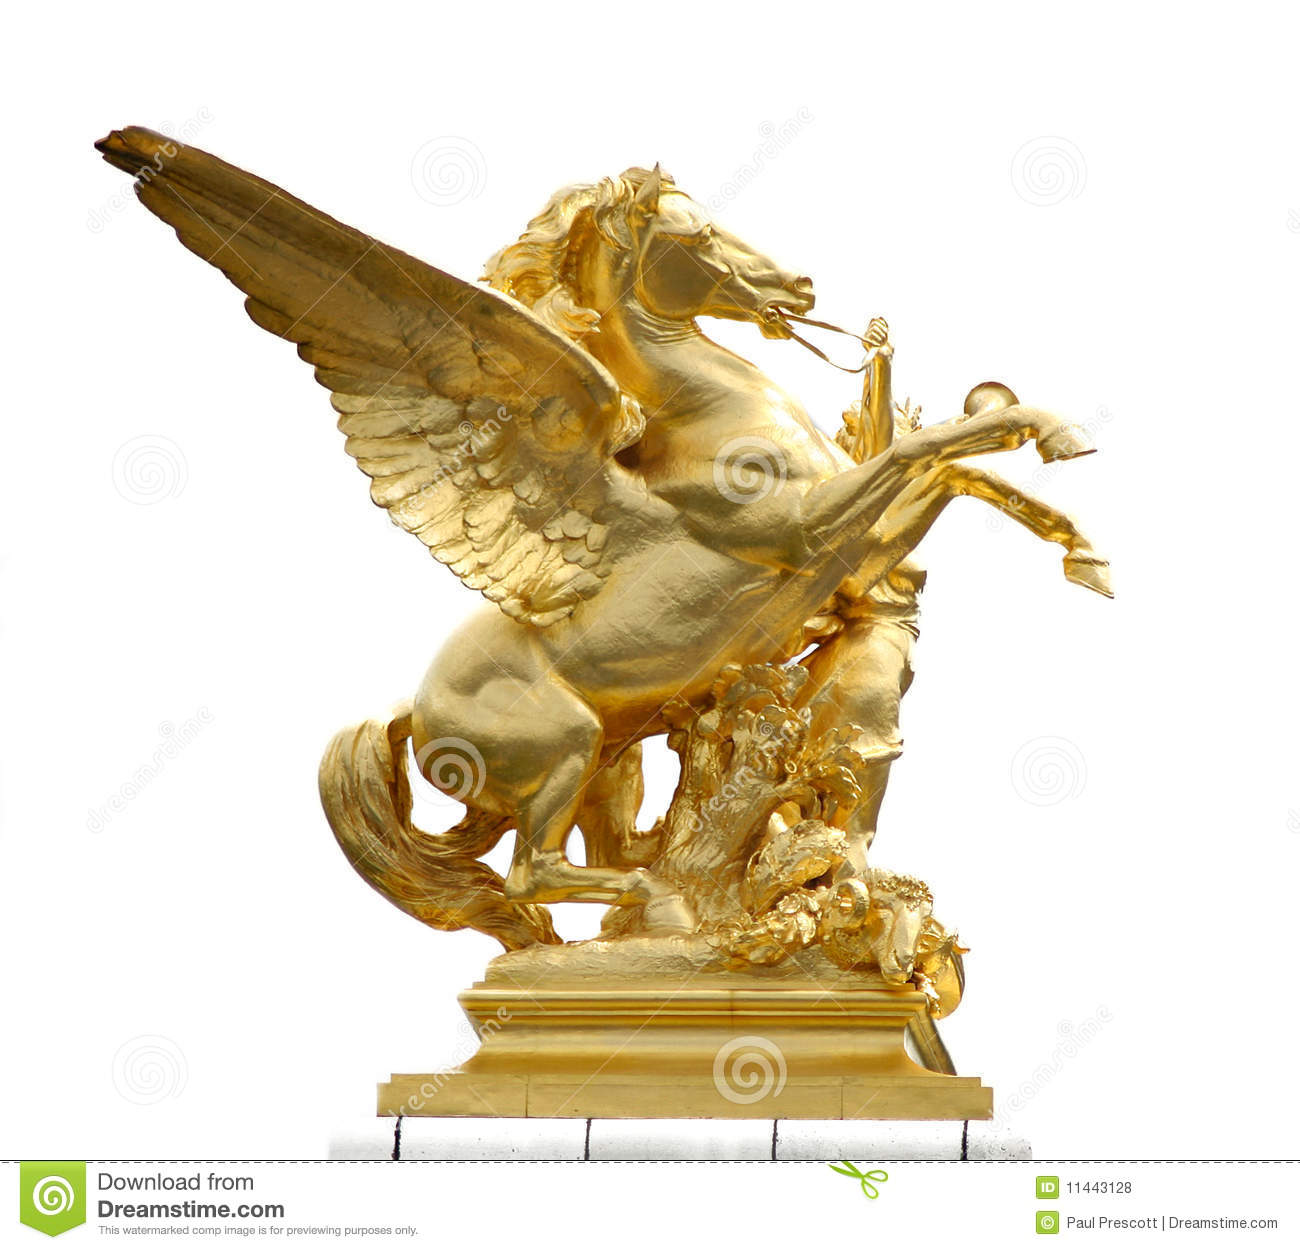 Golden horse statue stock photo. Image of building, wings ...